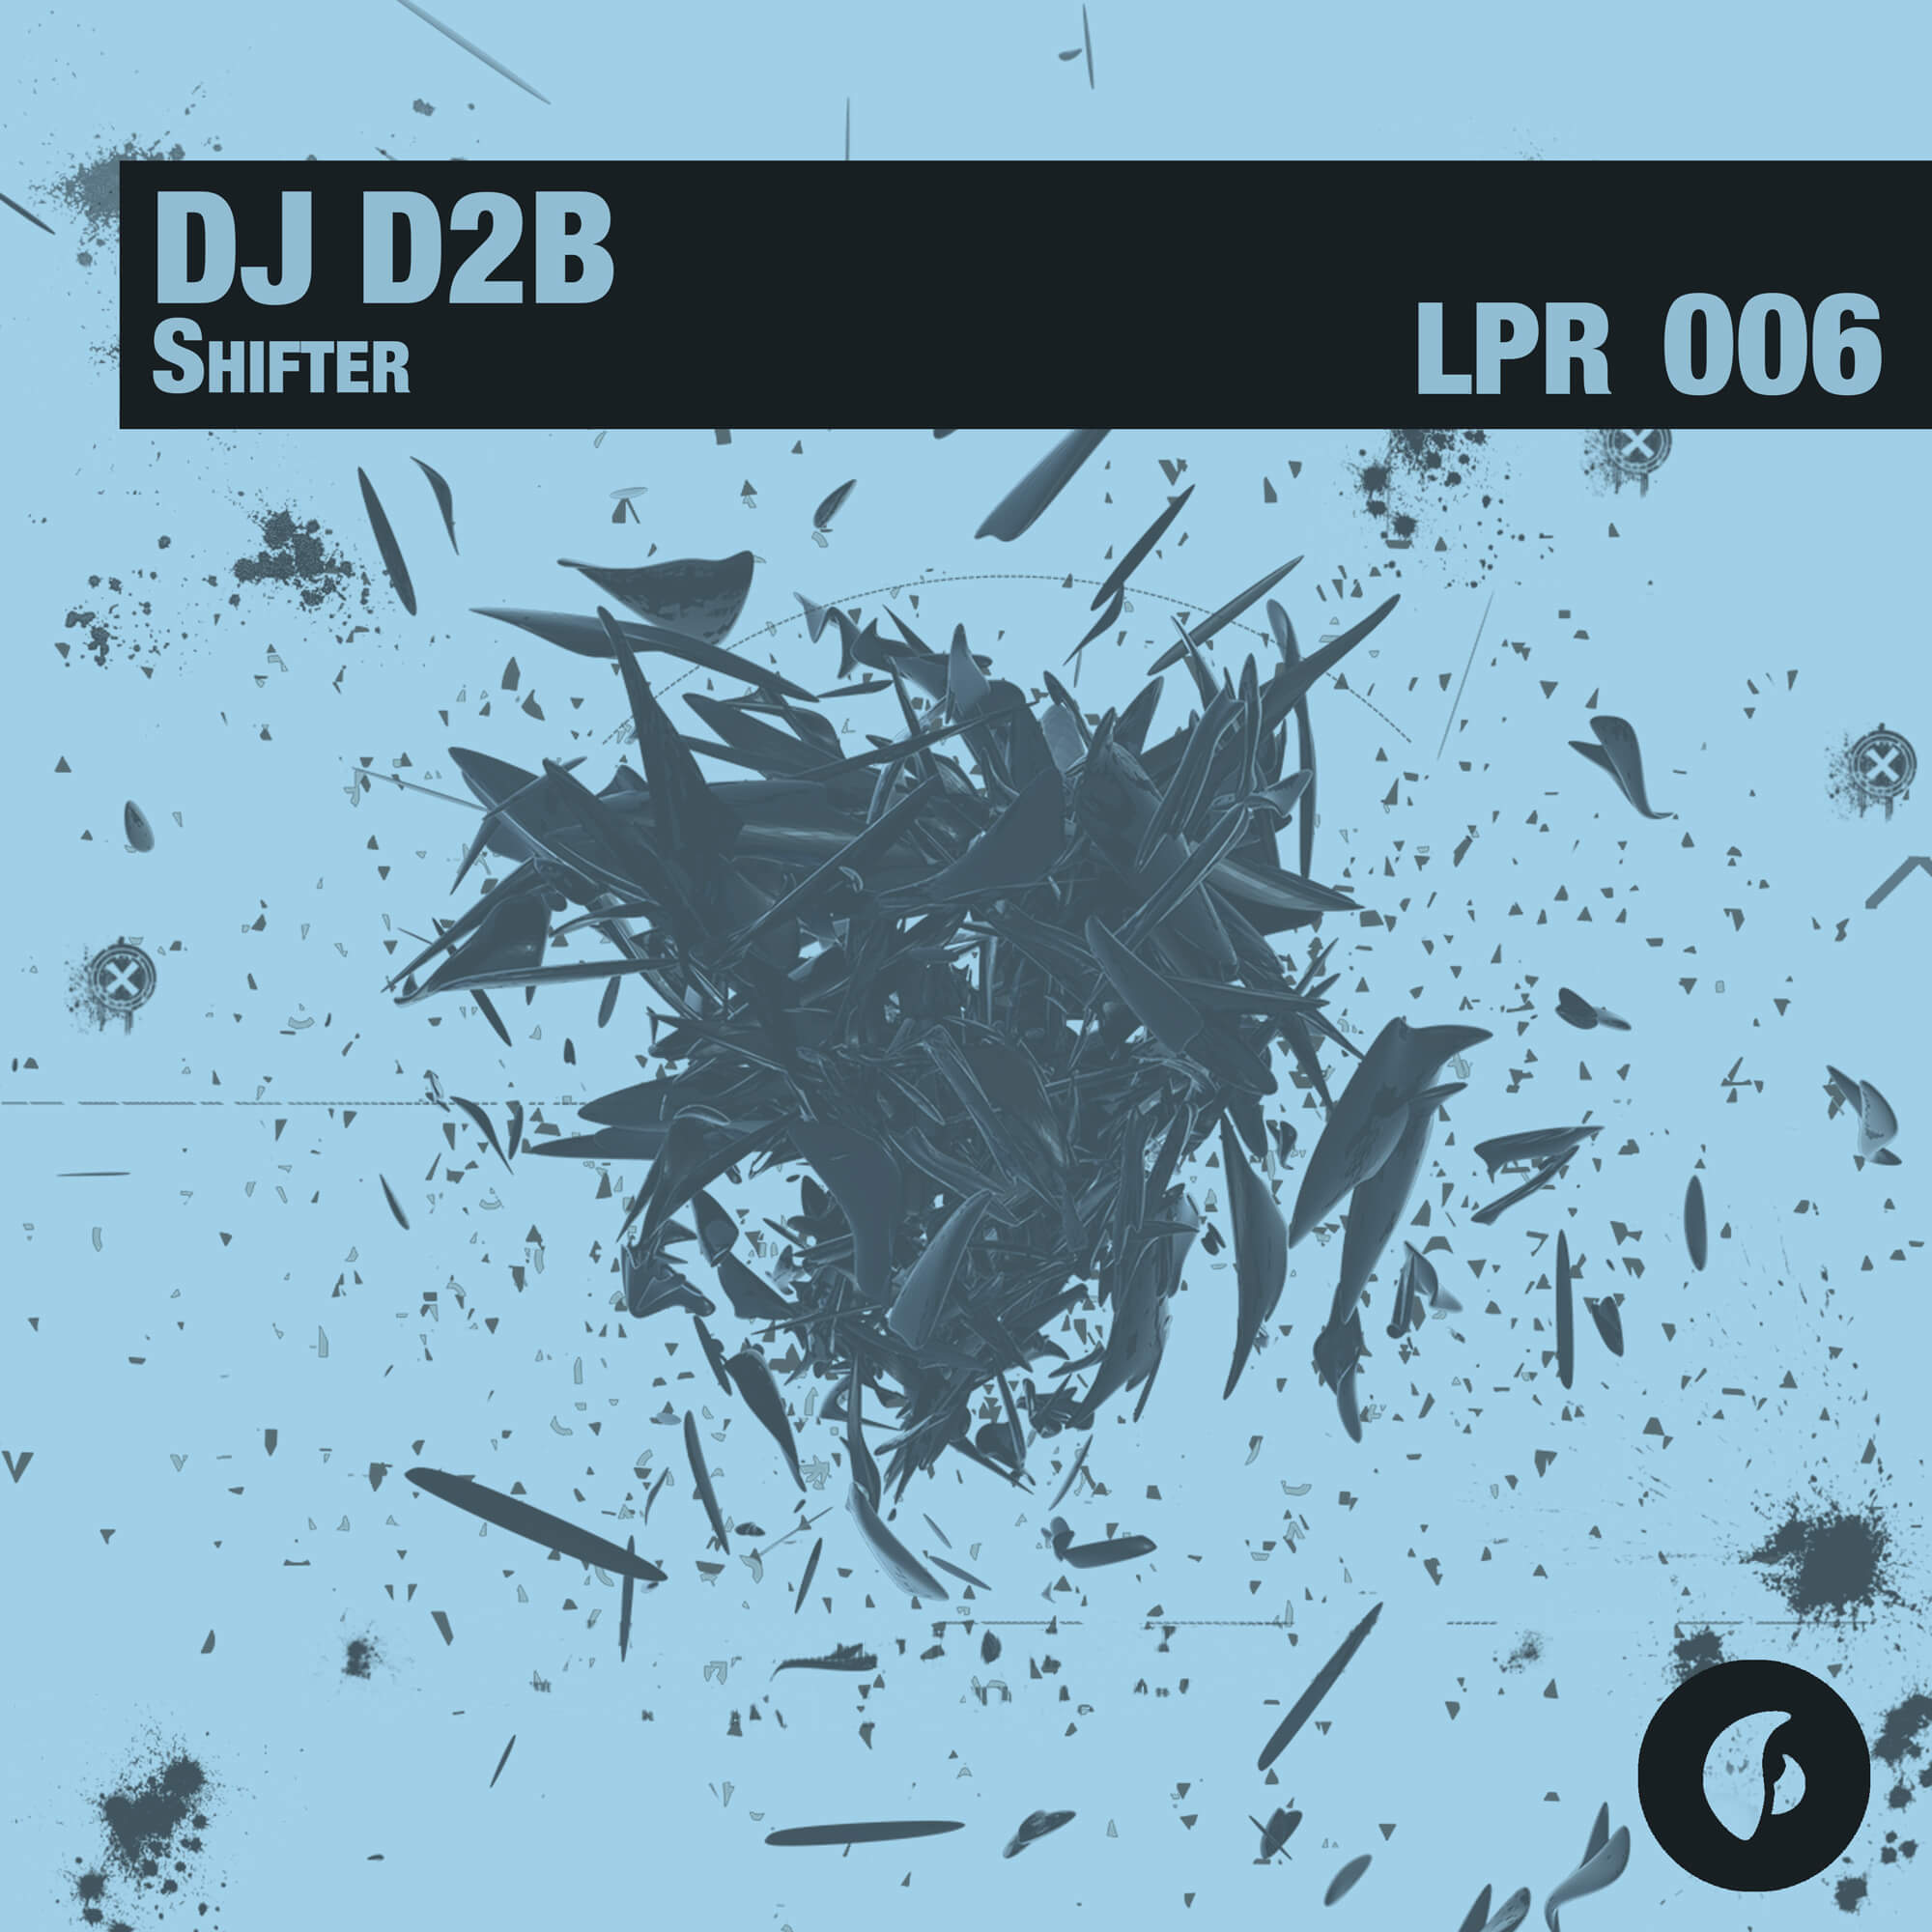 DJ D2B – Shifter out now on digital stores